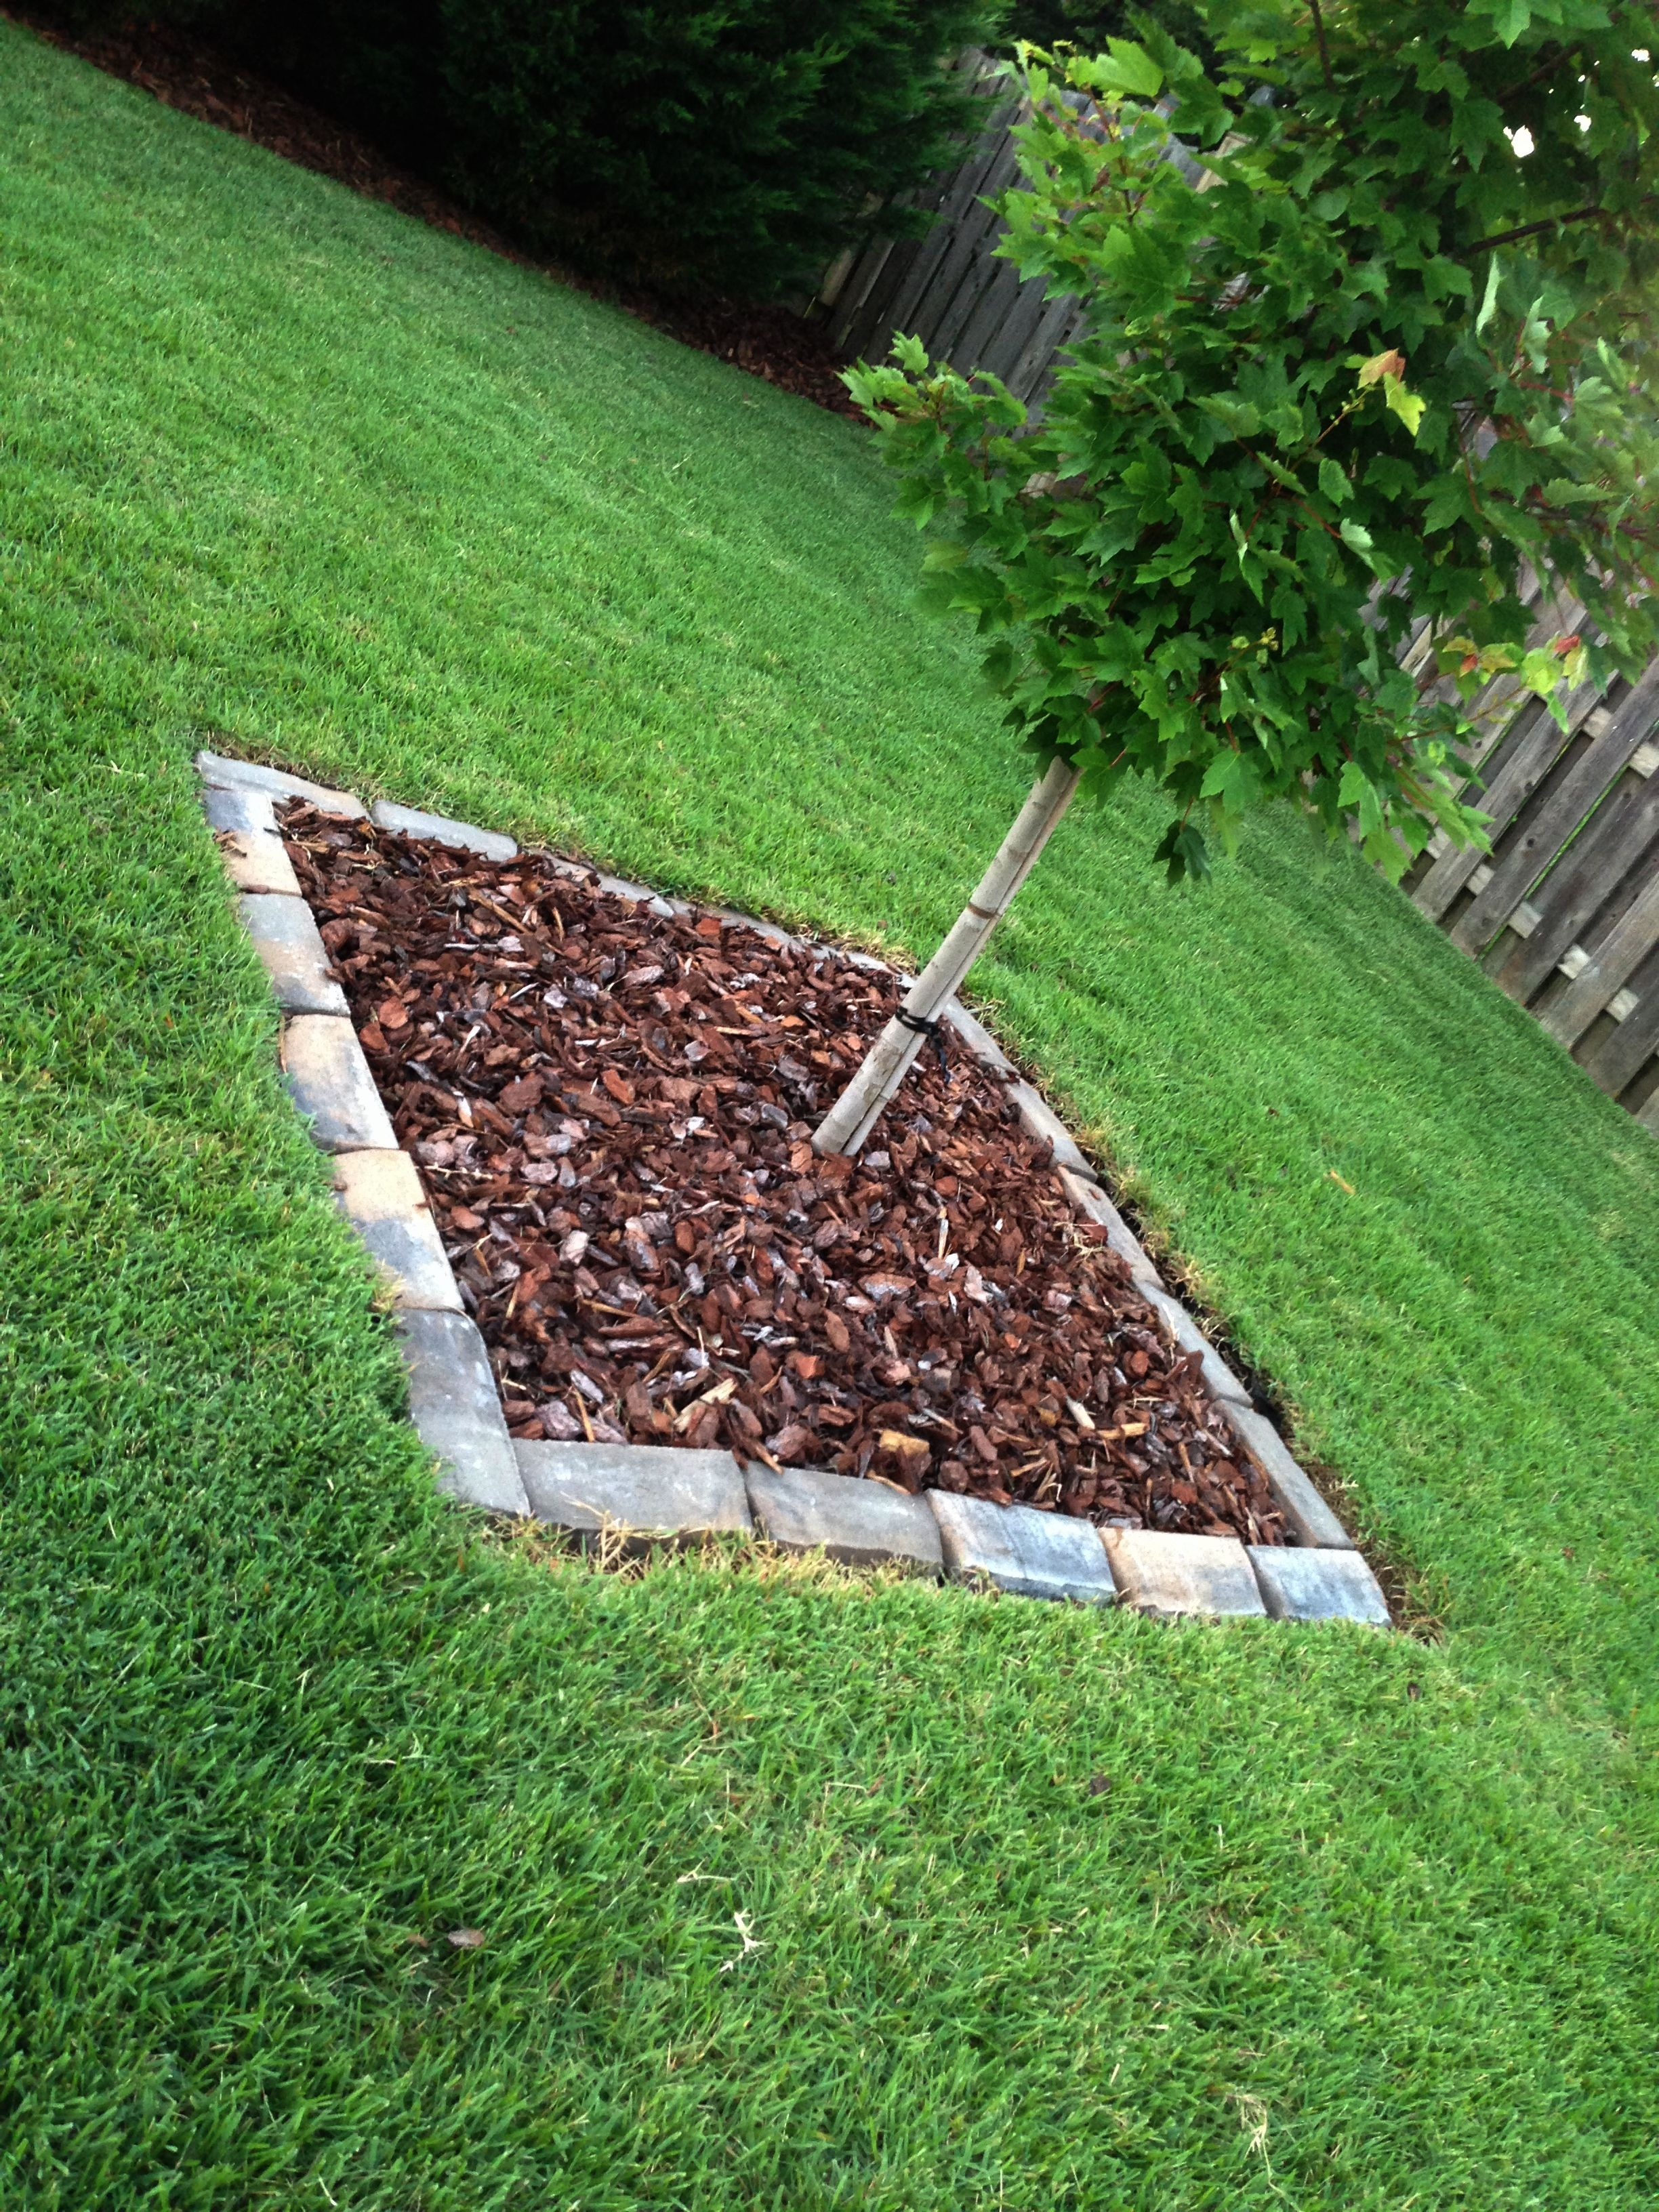 Rock mulch bed liners from Home Depot. (With images